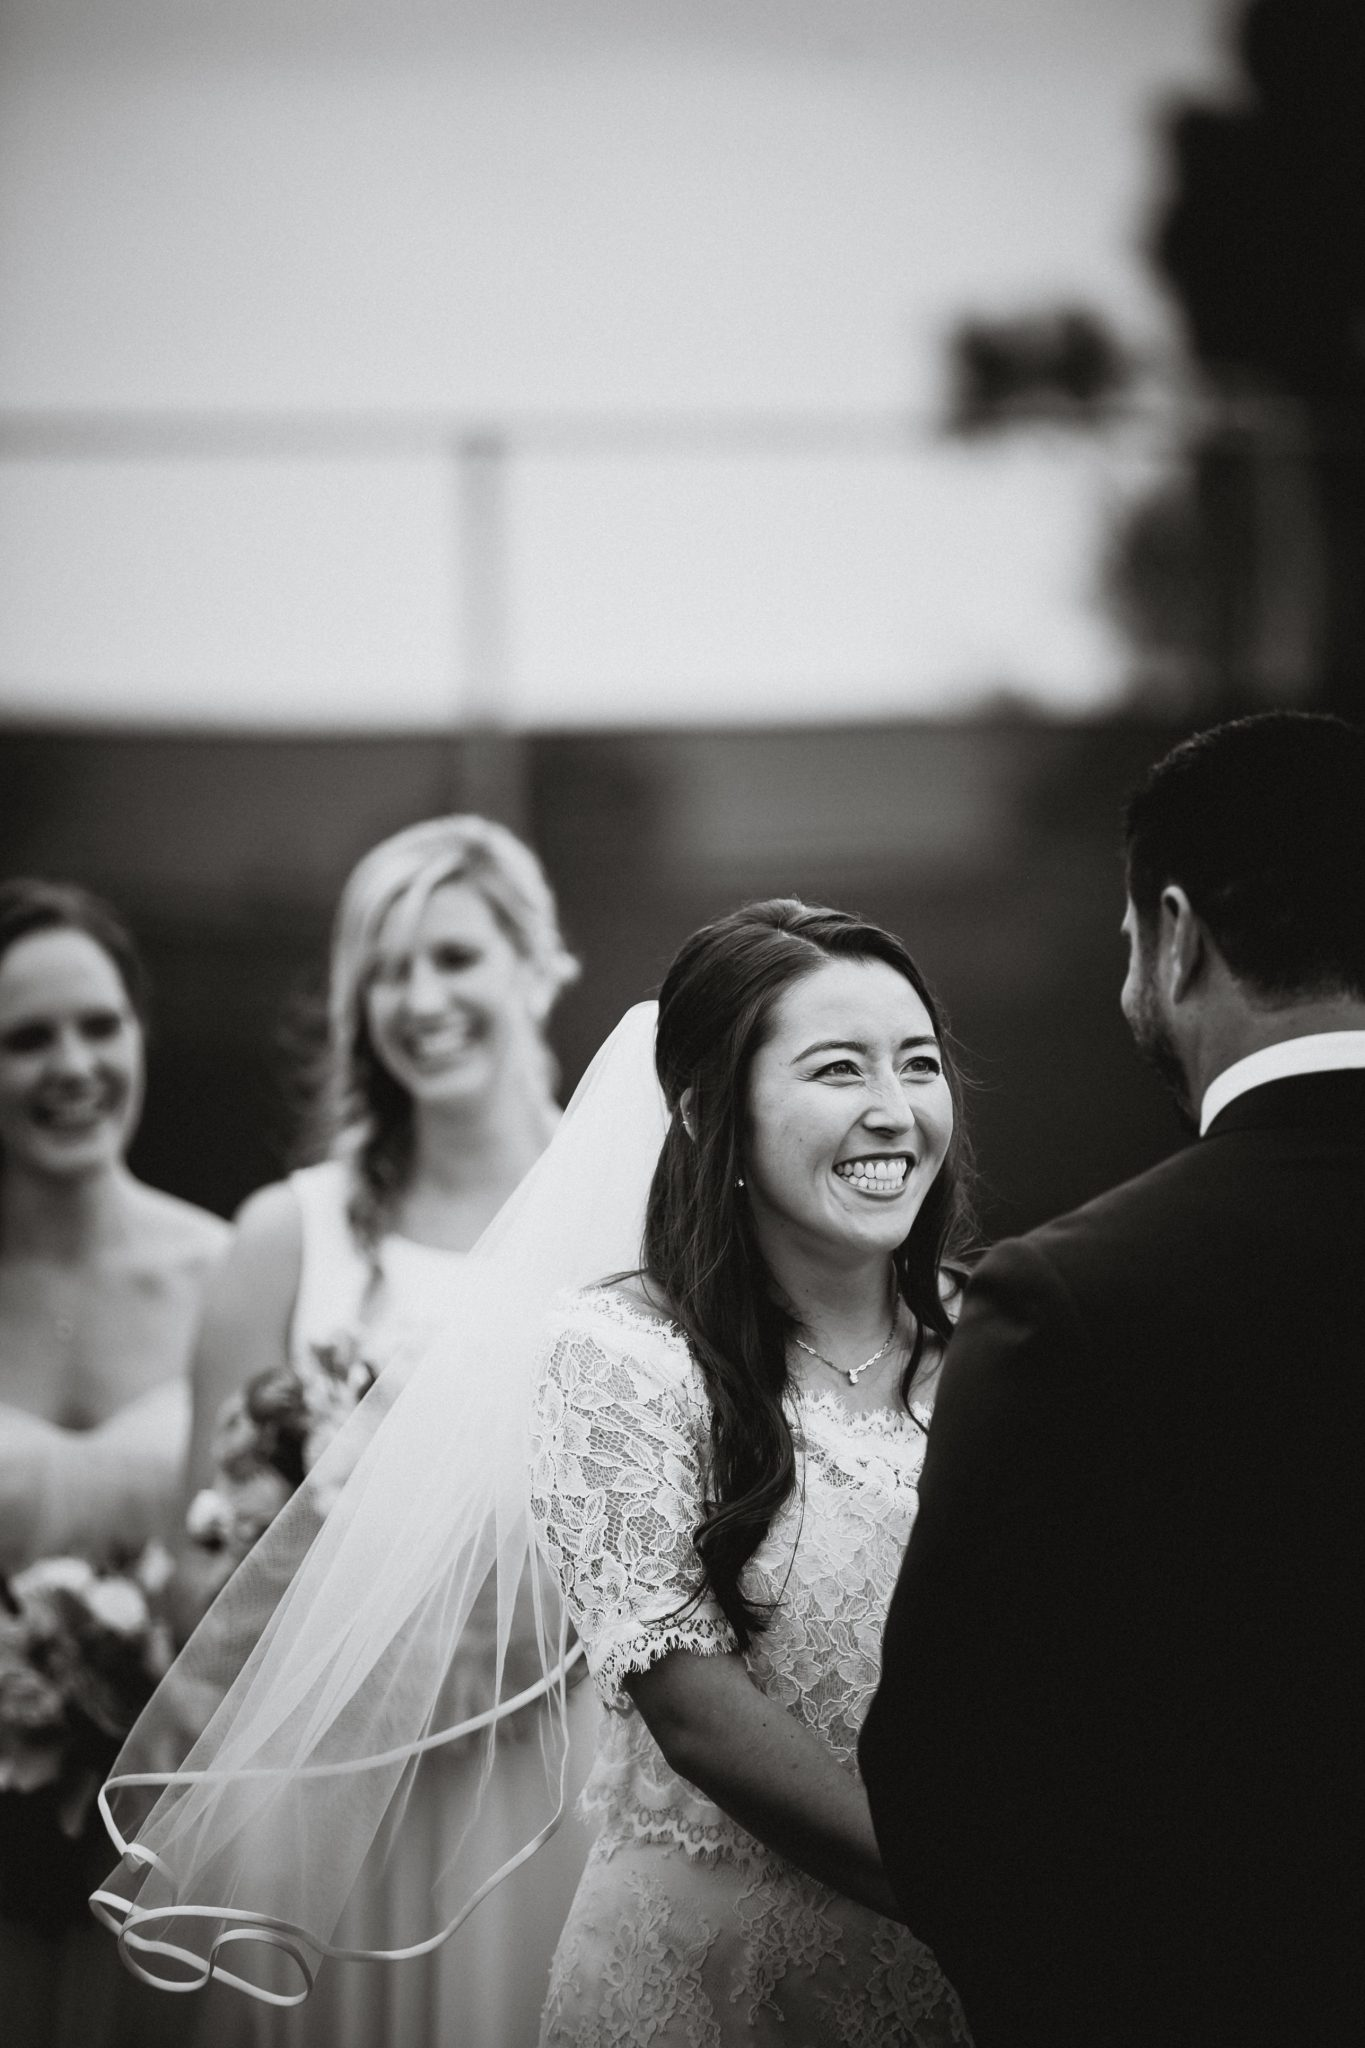 Bride smiles at groom during the ceremony at Lomas Santa Fe